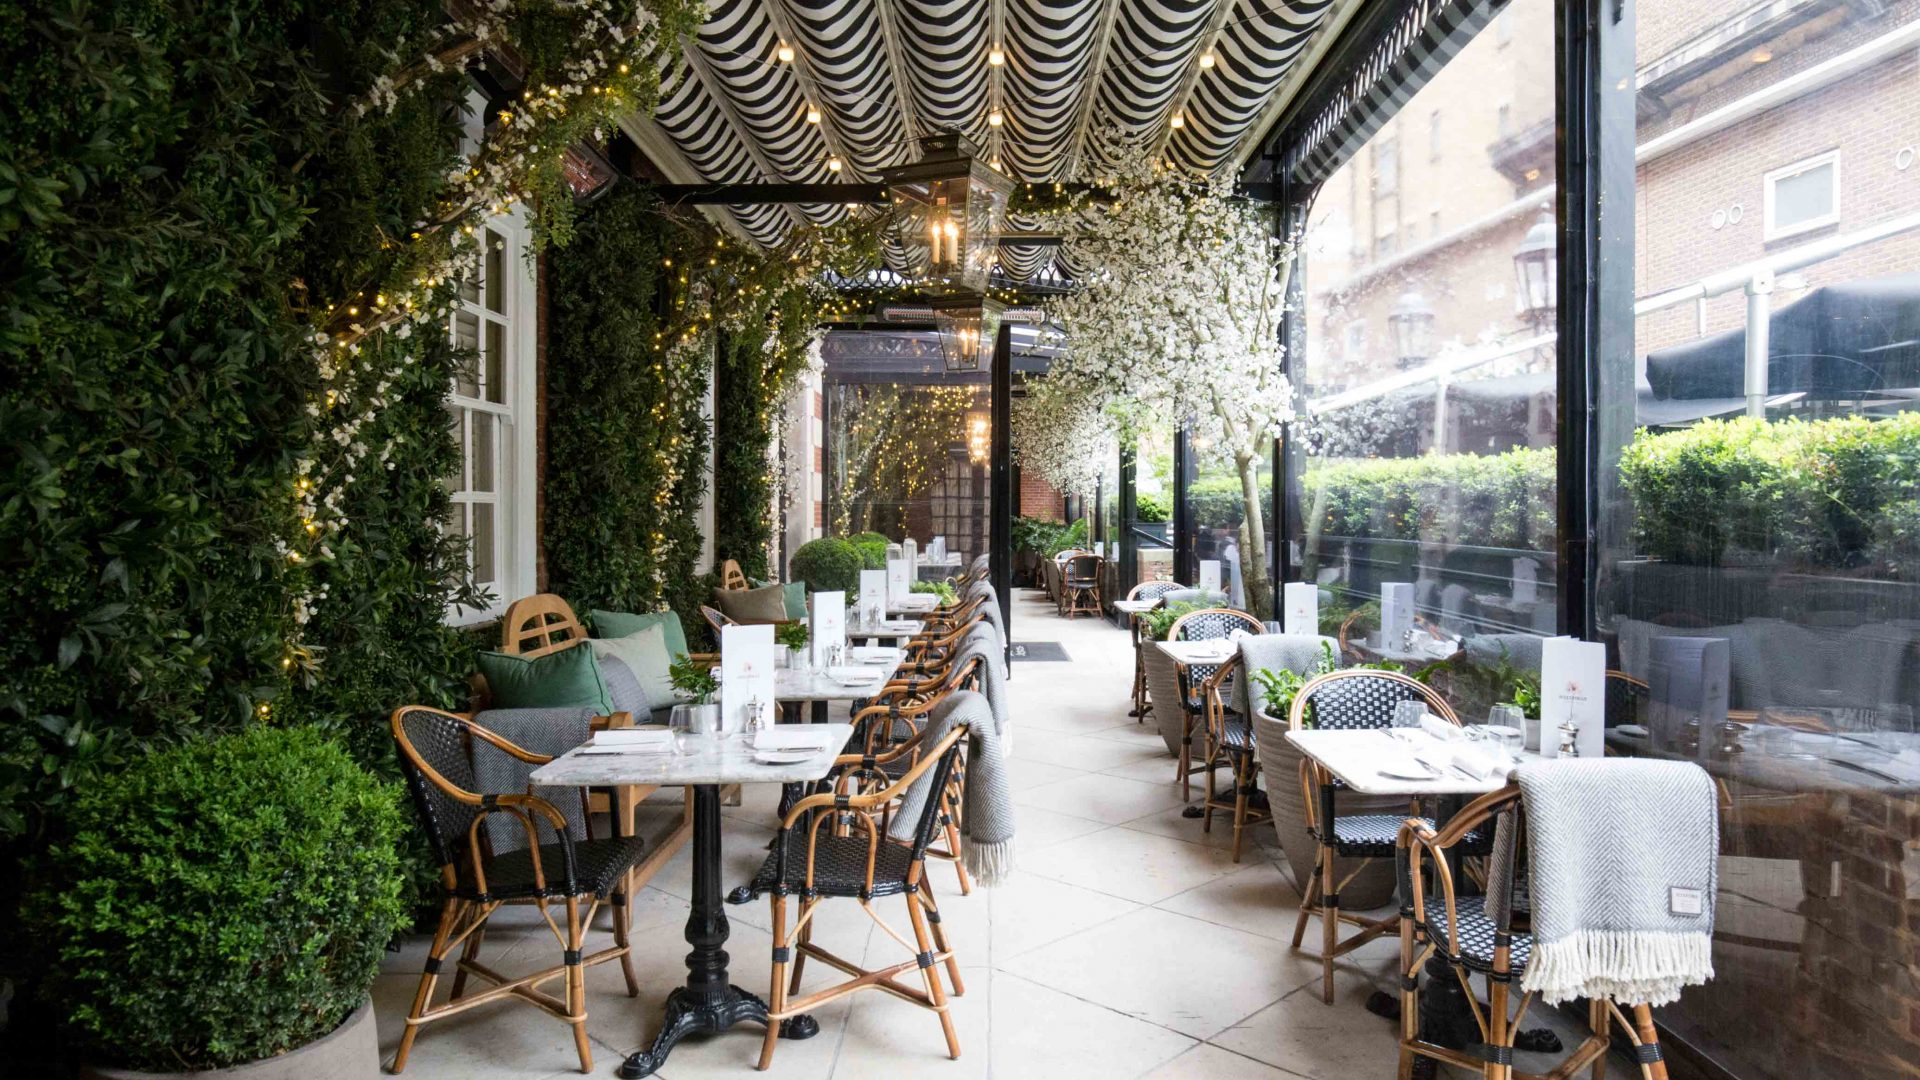 Dalloway terrace bar is an elegant poetic and for In the terrace